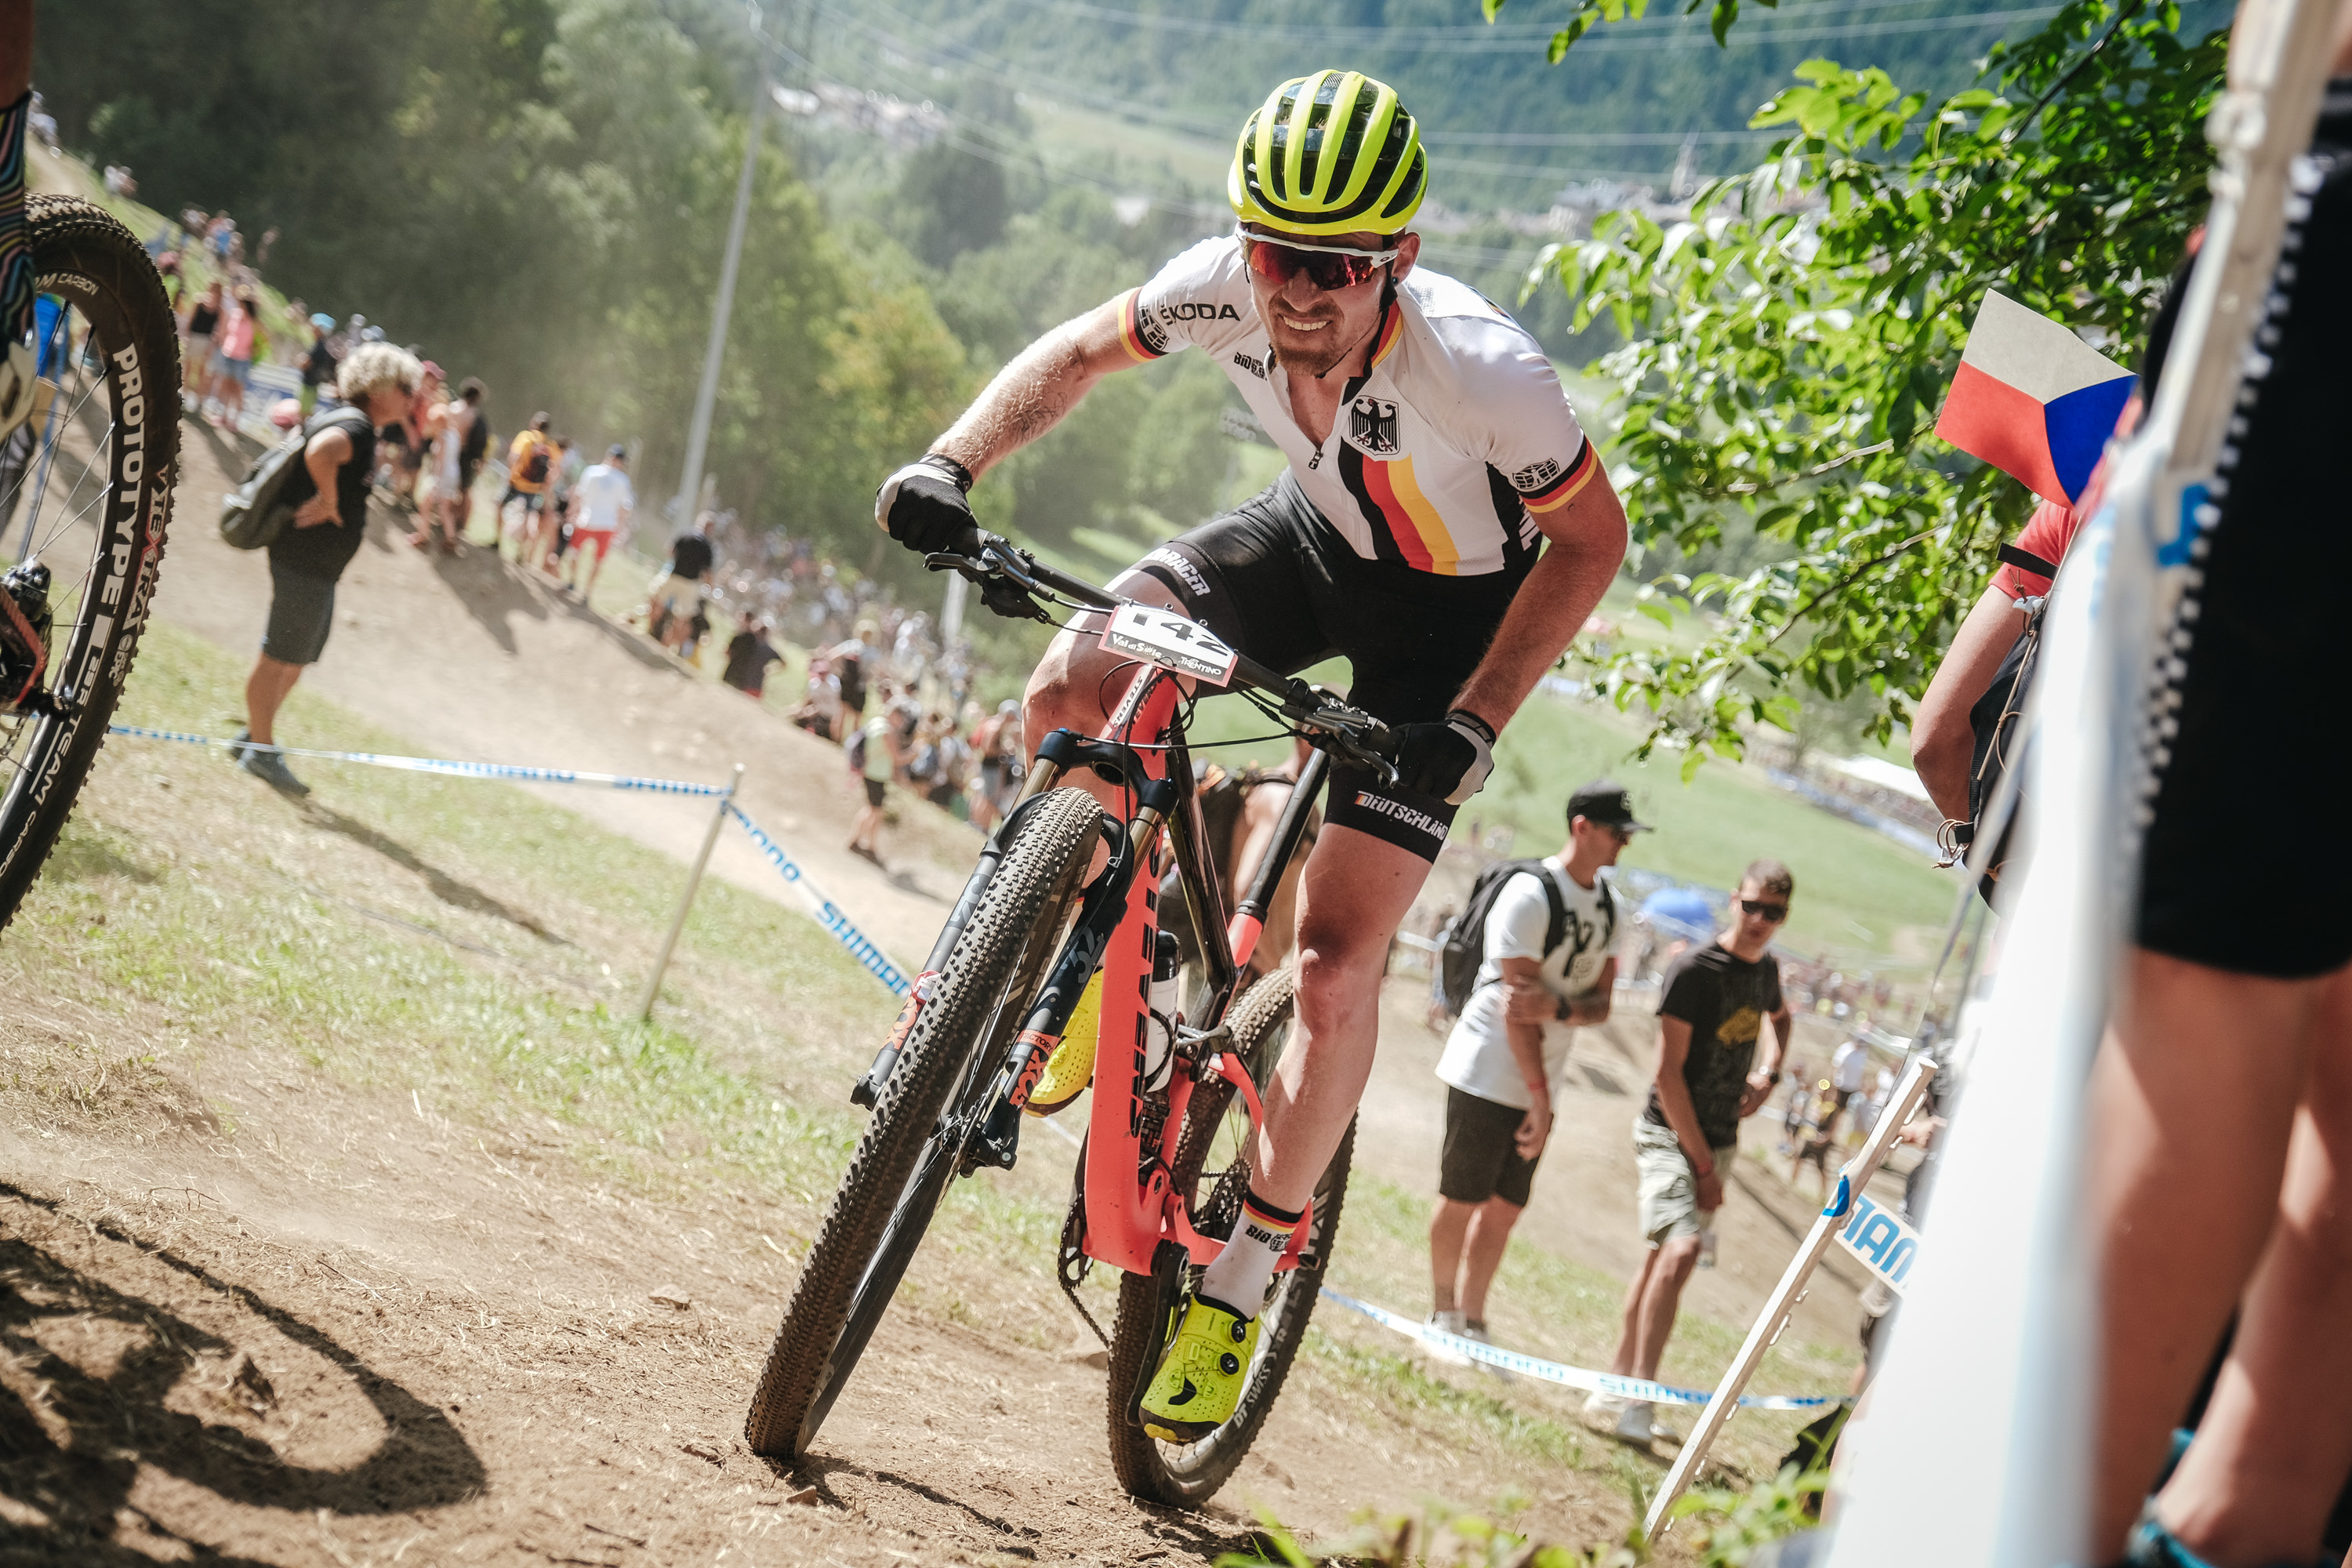 Christian Pfaeffle_fighting_WC19_Val di Sole_men_by Traian Olinici